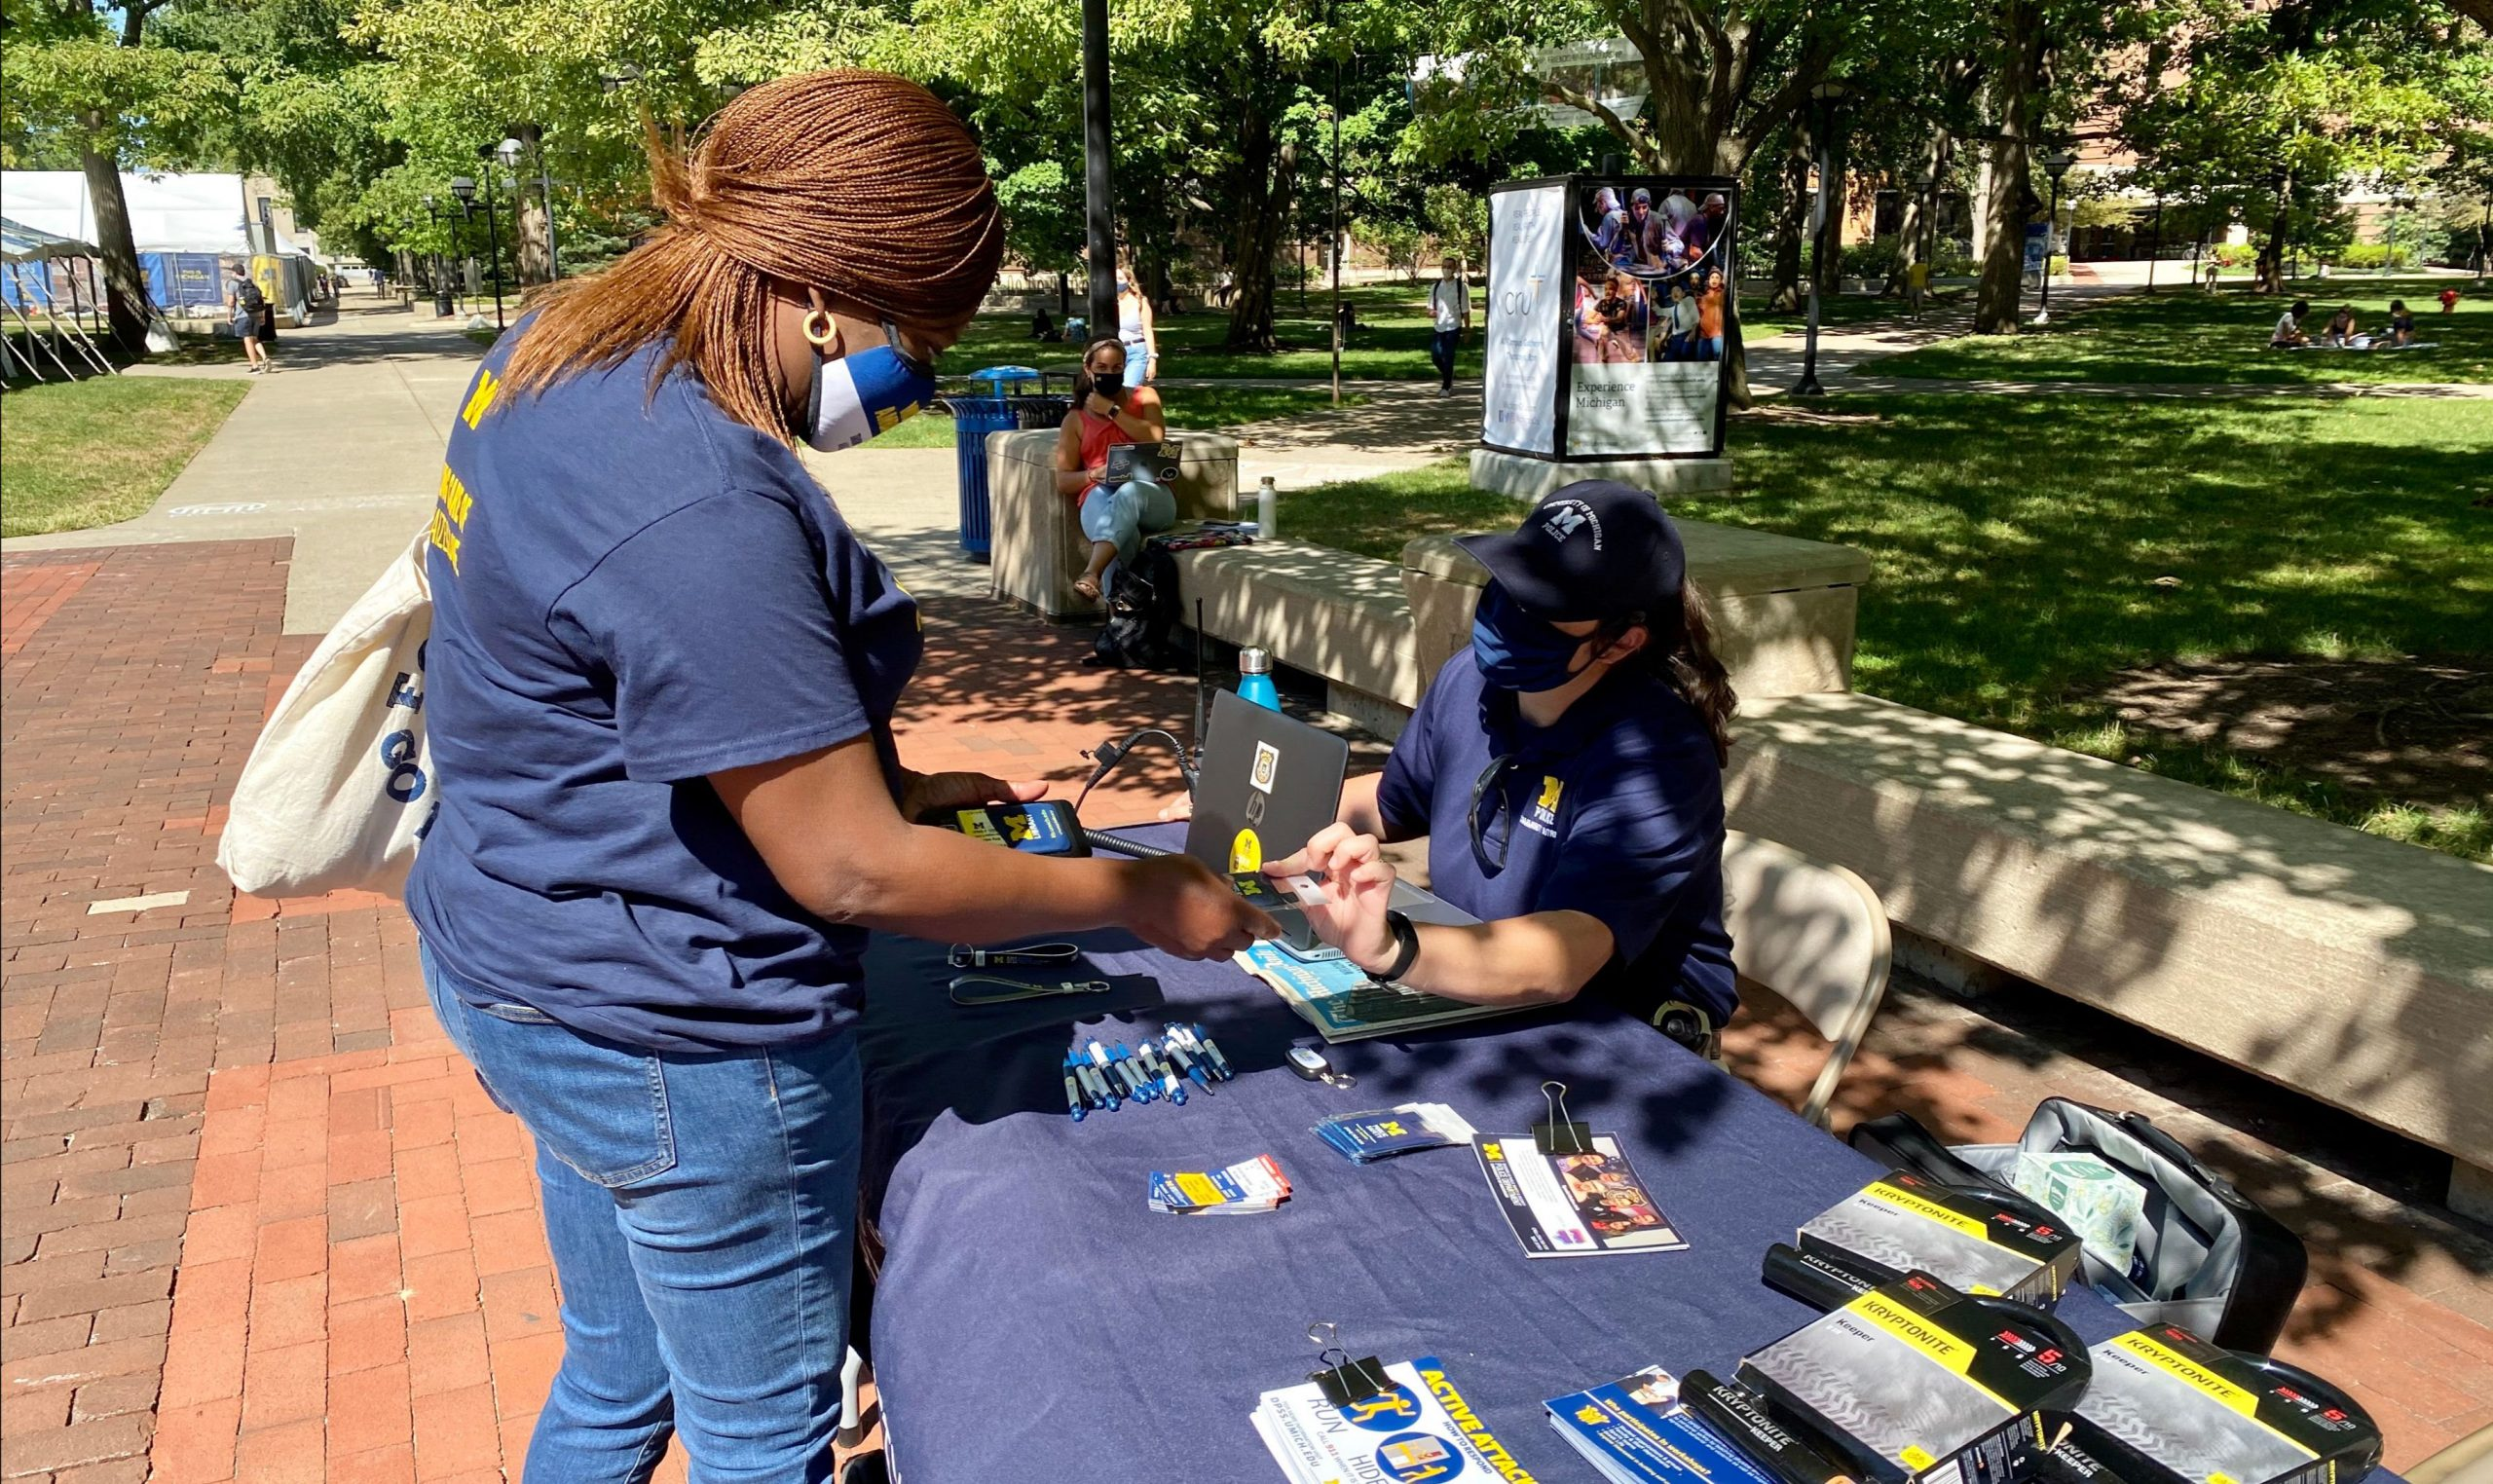 DPSS officer on the Diag registering personal electronics and bikes to help prevent theft.